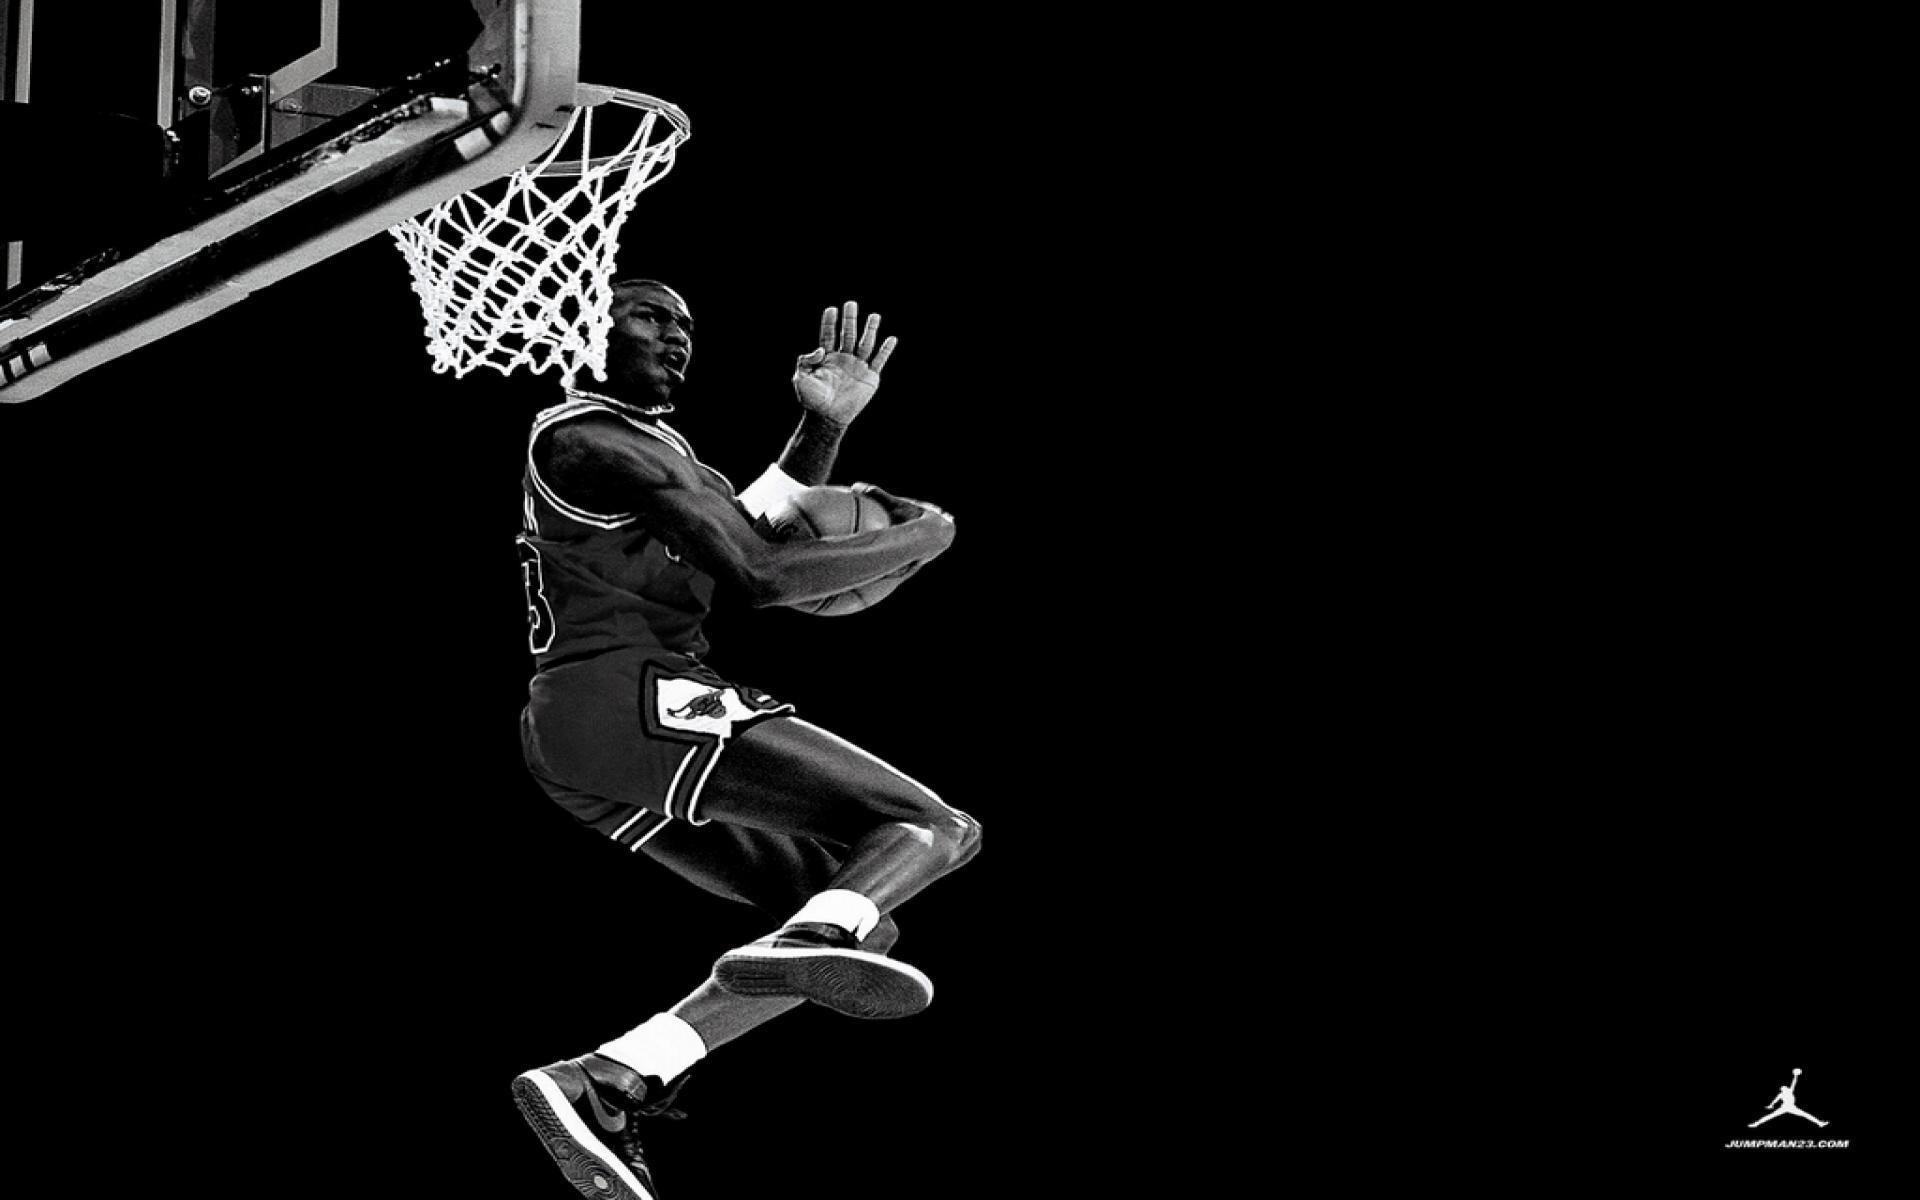 new style 3f1a3 36819 1920x1200 Most Downloaded Michael Jordan Wallpapers - Full HD wallpaper  search · Download · typographic Portraits ...